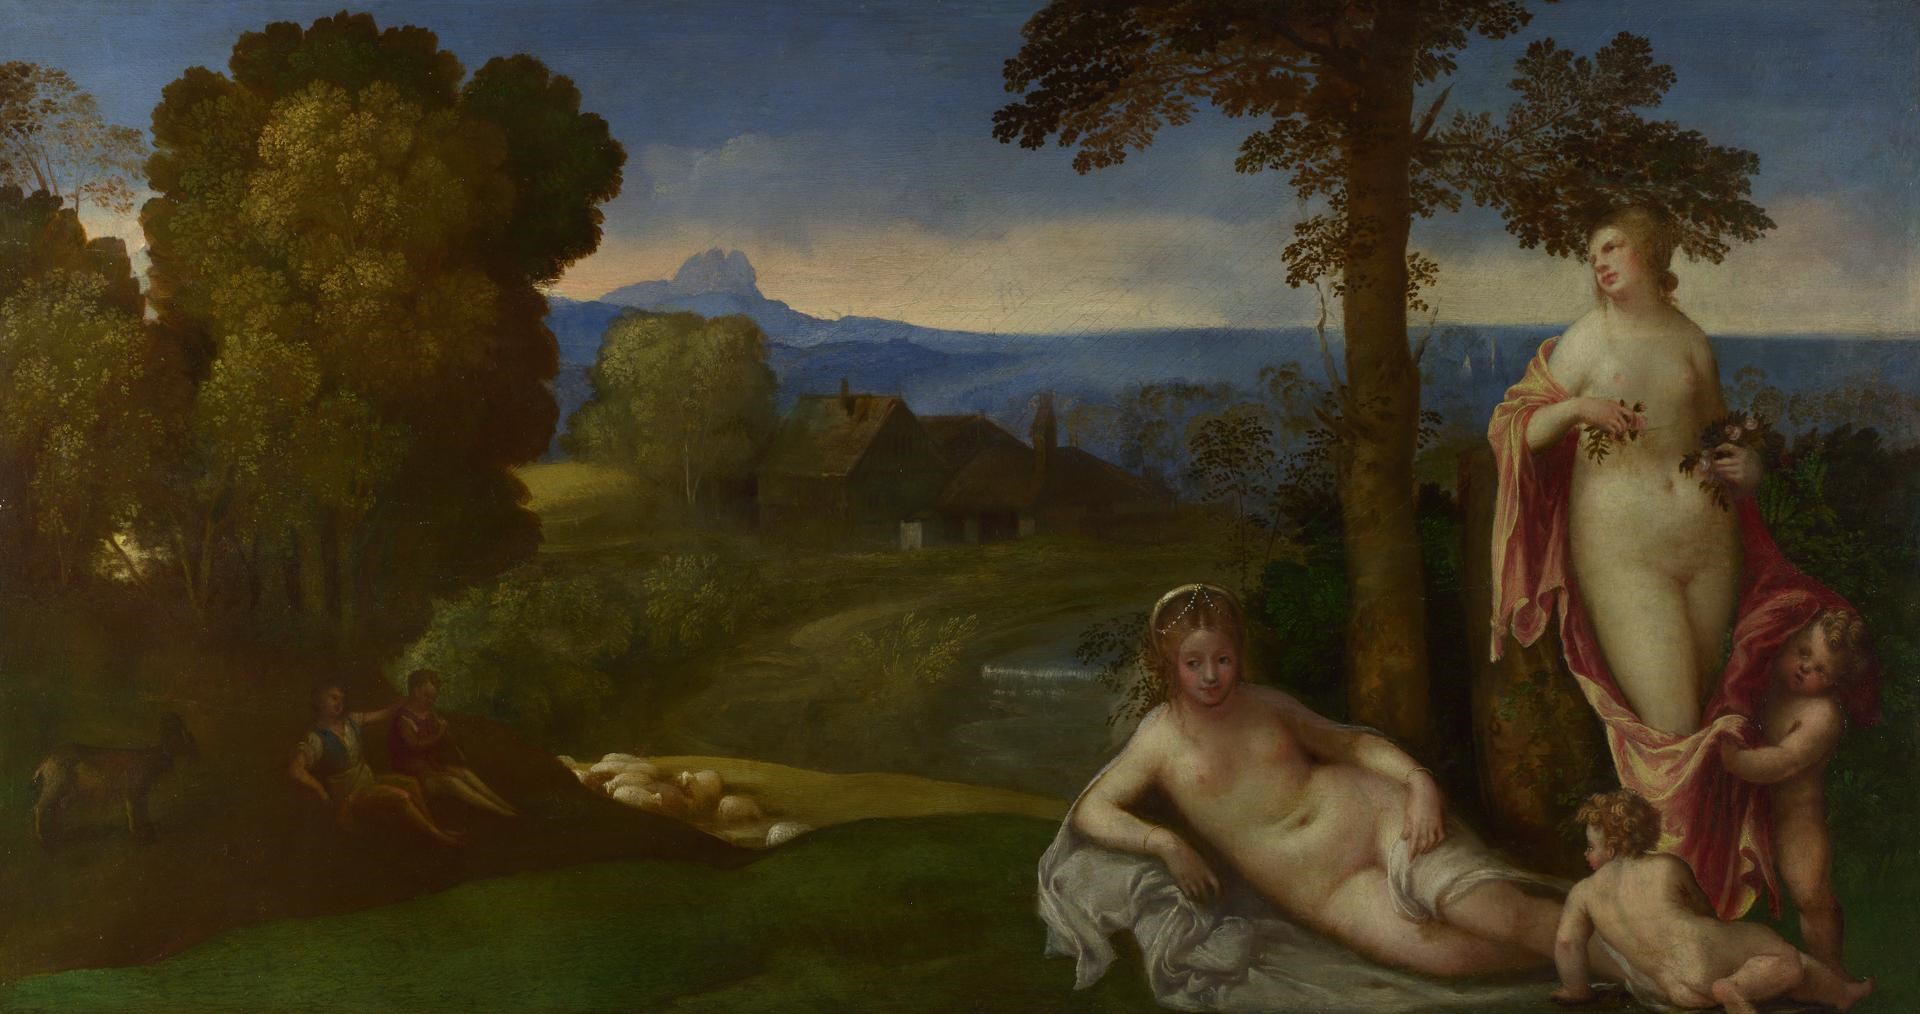 Nymphs and Children in a Landscape with Shepherds by Imitator of Giorgione